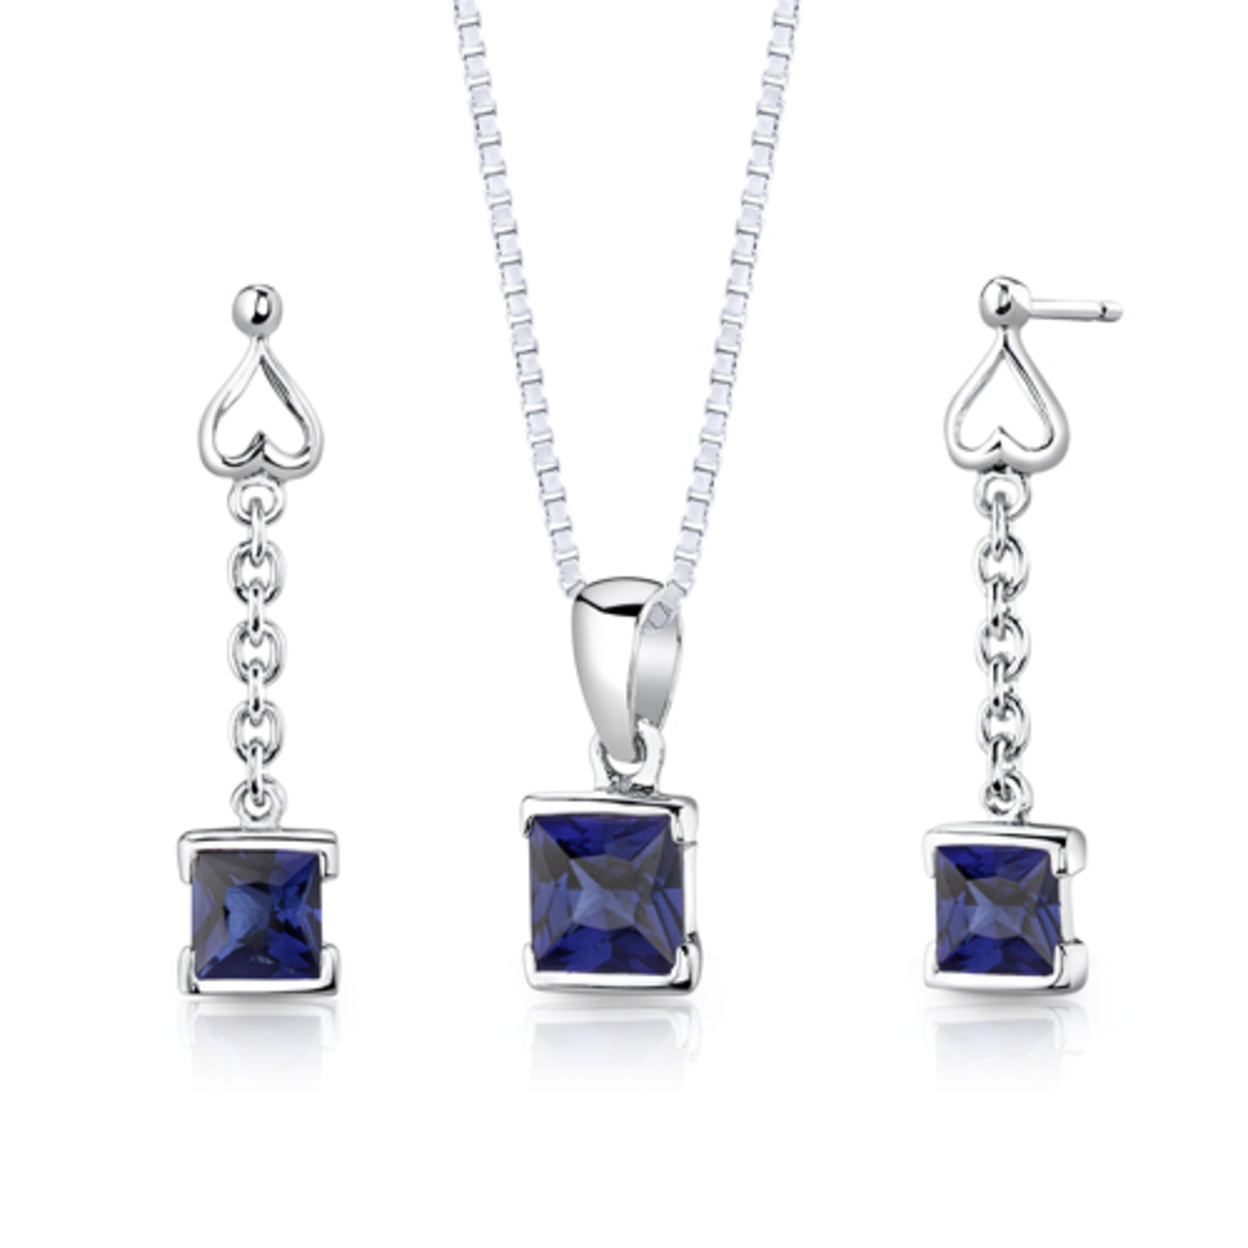 Sterling Silver Princess Cut Sapphire Pendant Earrings Set Style Ss2942